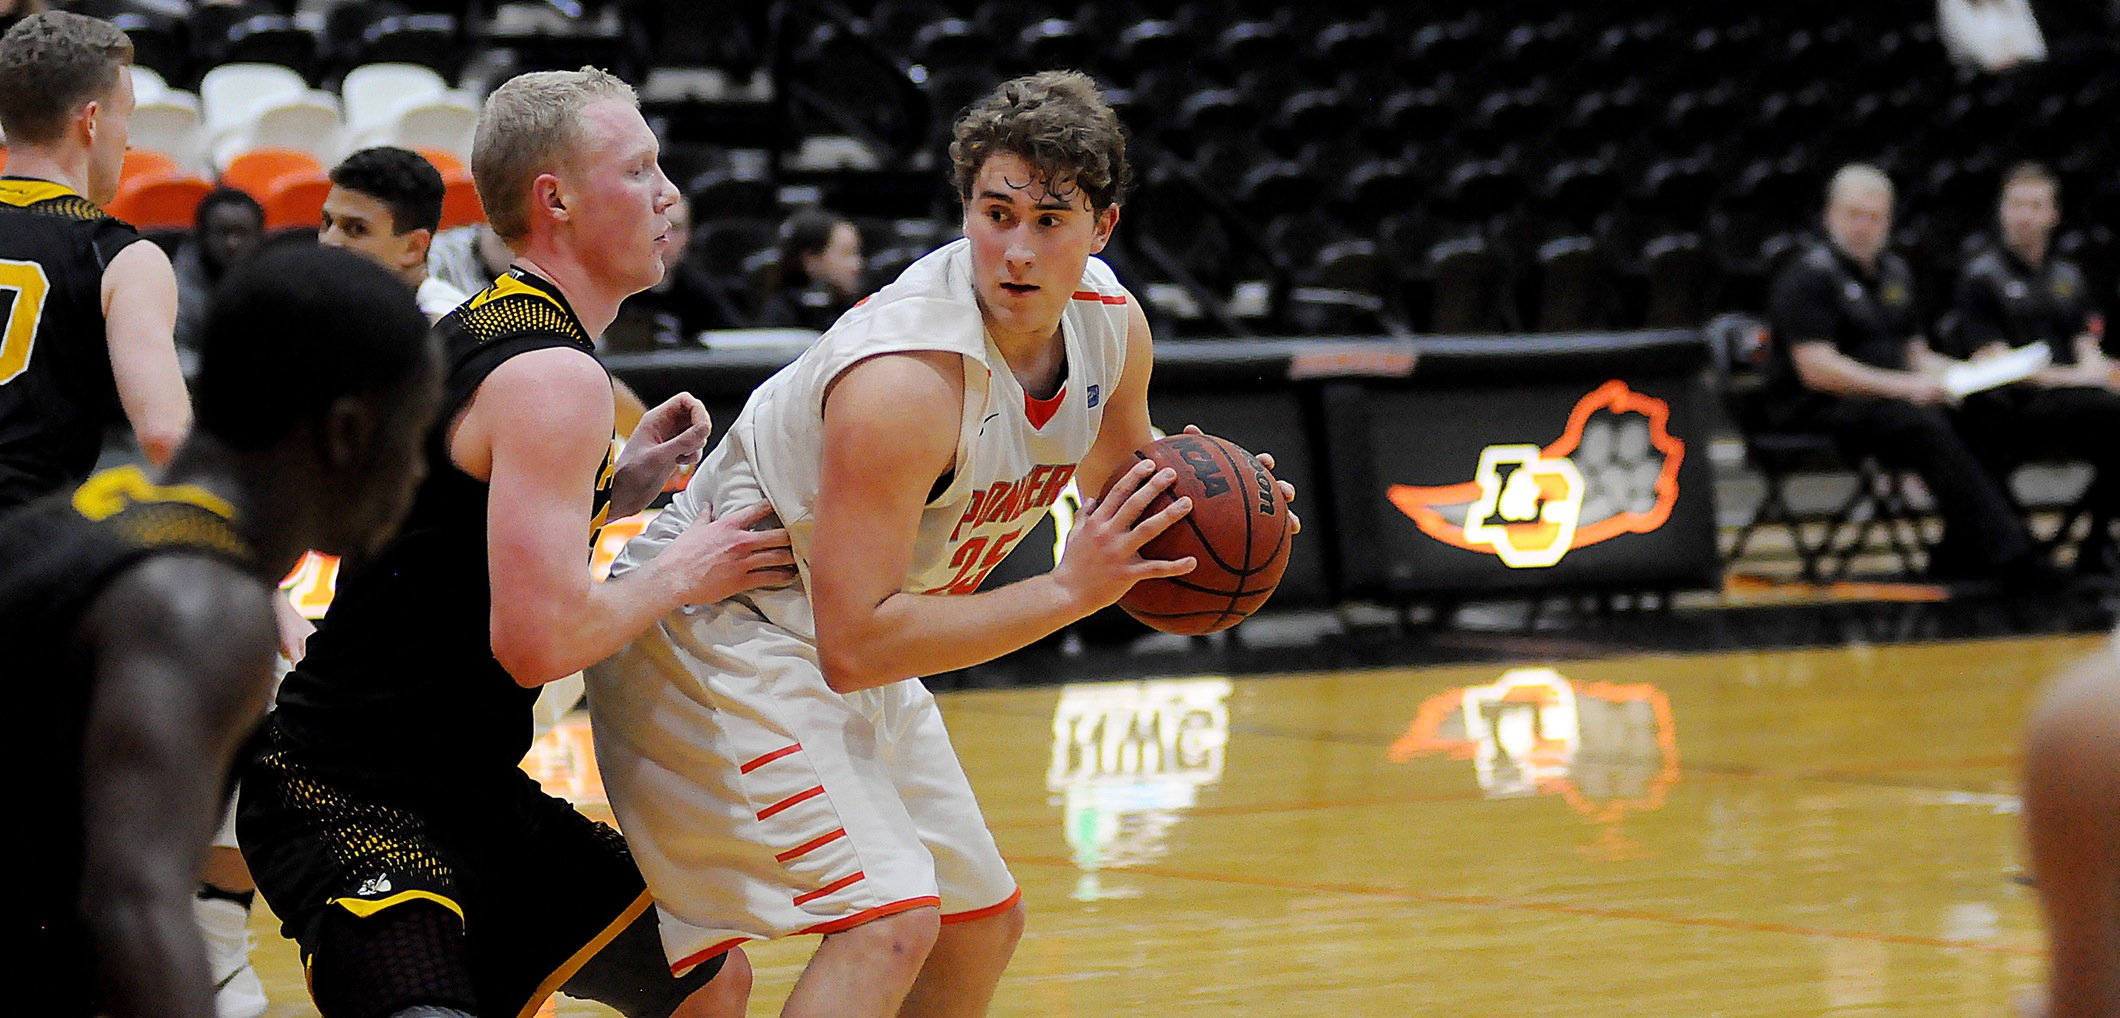 Best shooting night of the NWC season sparks Pios win